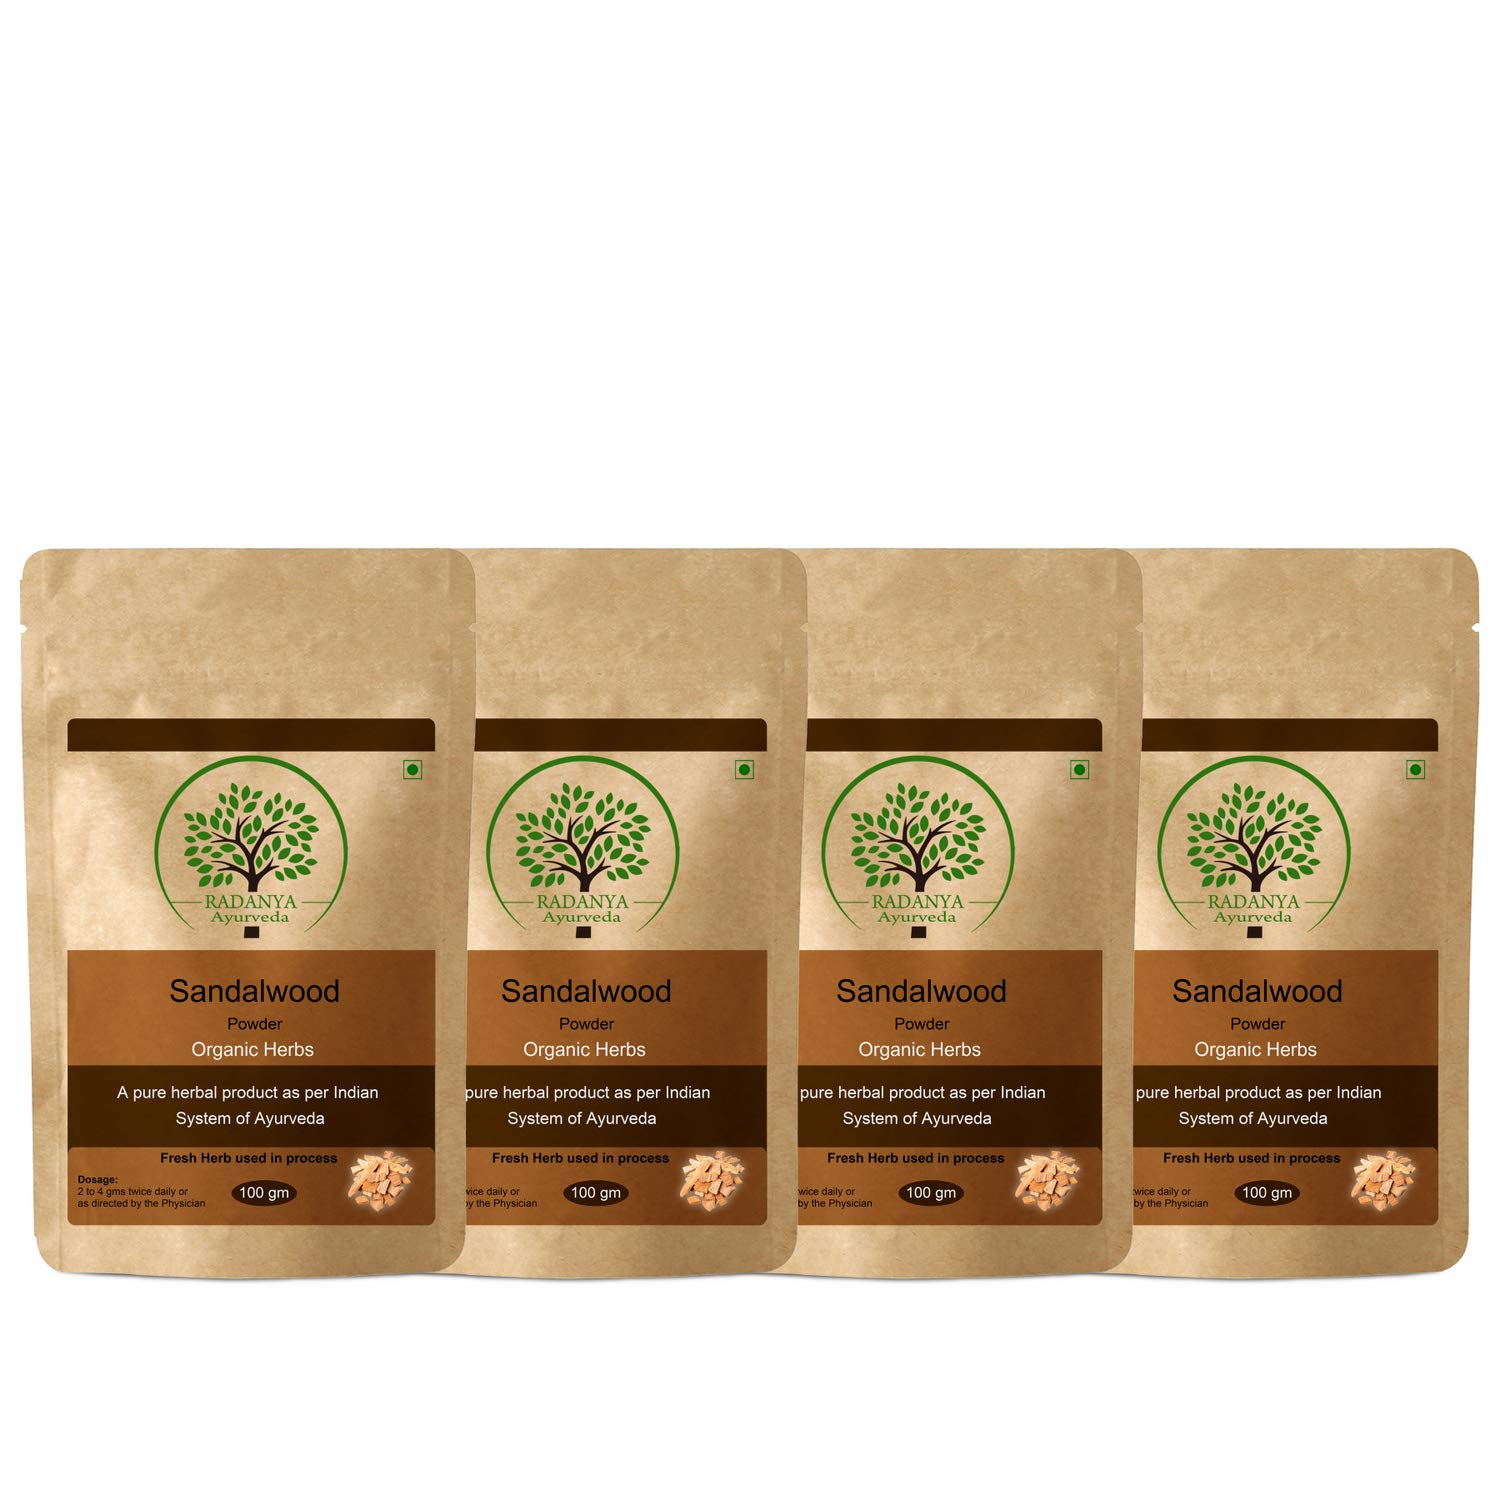 RADANYA Ayurveda Sadalwood Powder 100 Gram - Indian Pure Natural Essential Organic Herbal Supplement Powder - Pack of 4